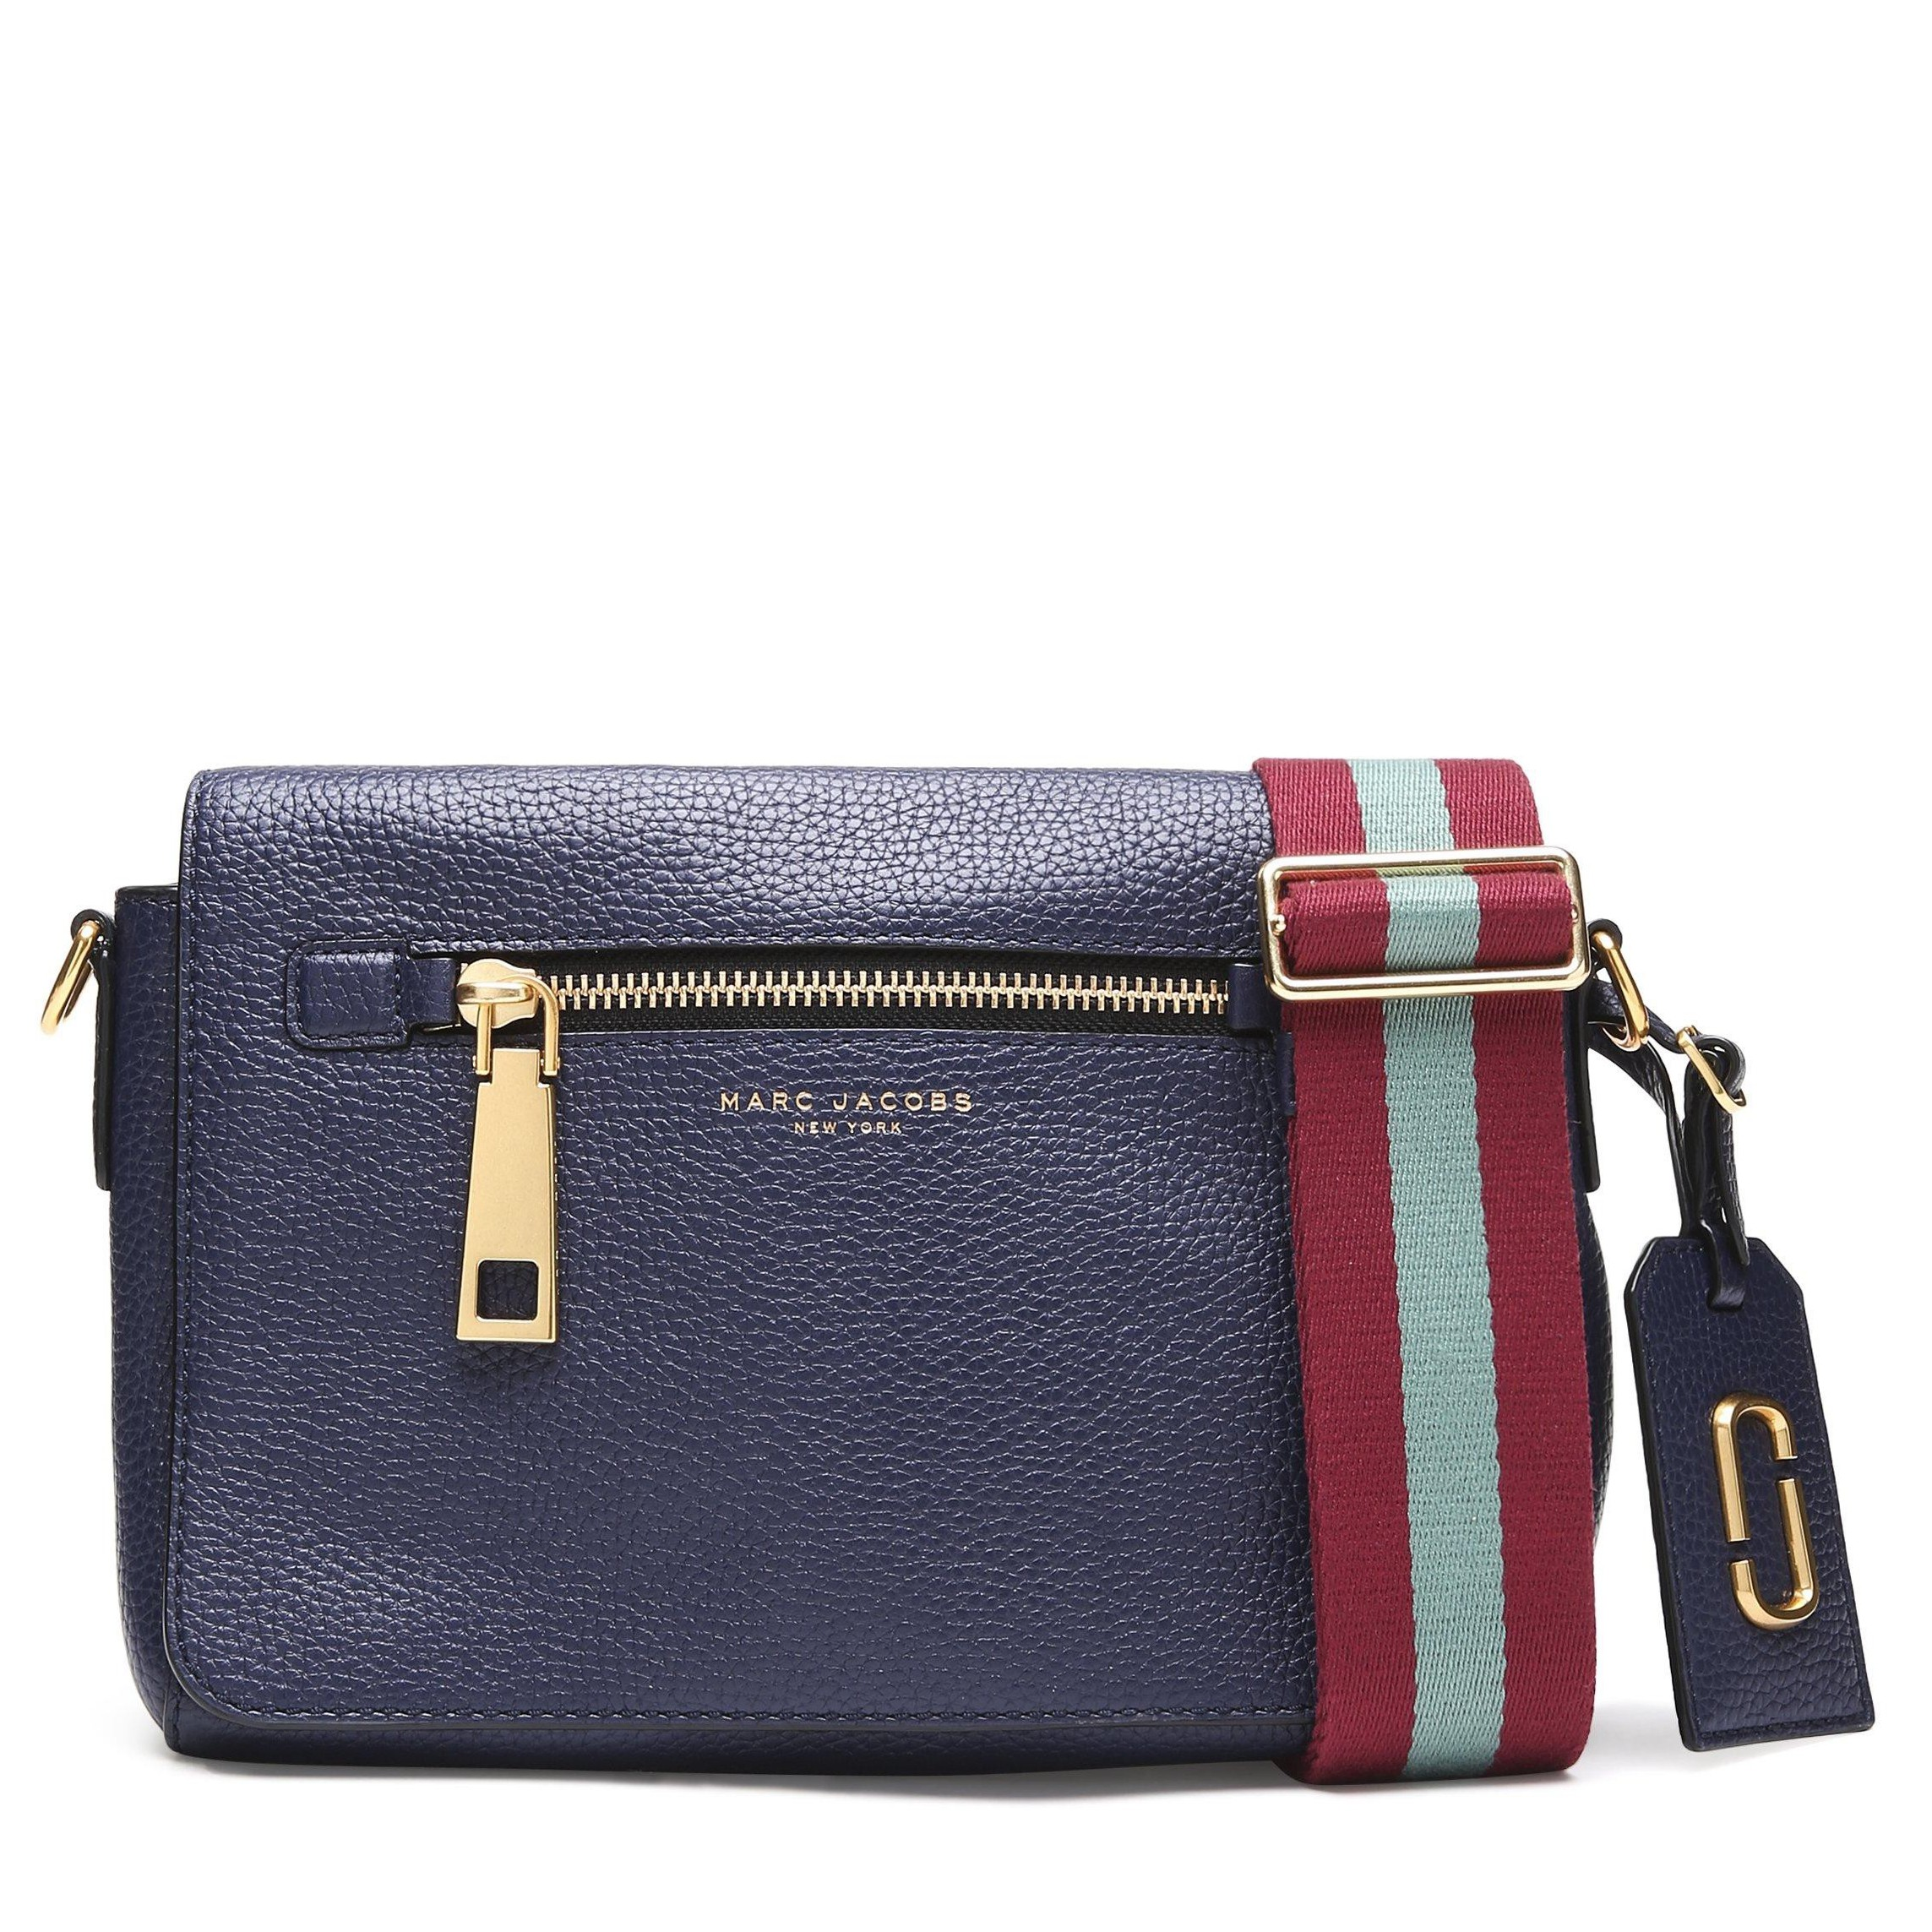 Gotham Small Leather Shoulder Bag In Midnight Blue With Vino Multi Webbing Strap